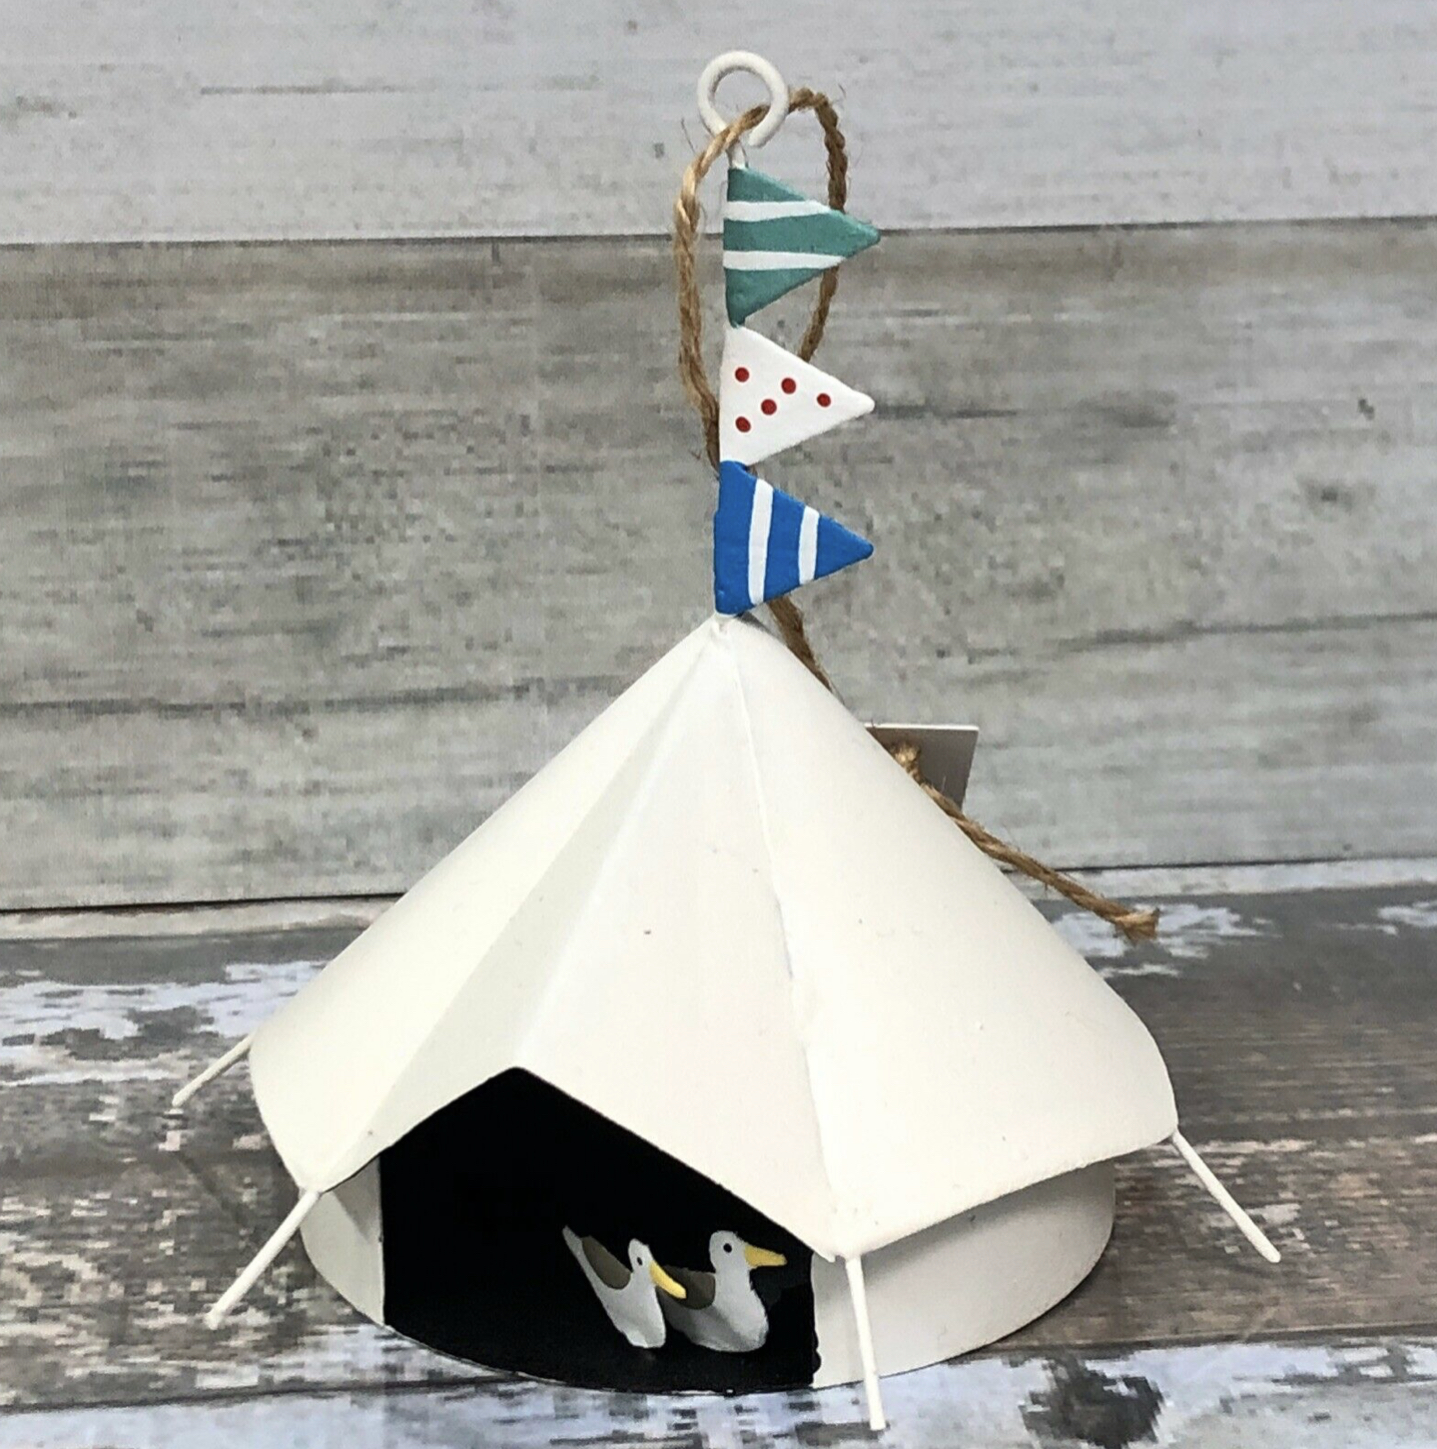 Glamping tent with seagulls. Campsite hanging decoration by shoeless joe